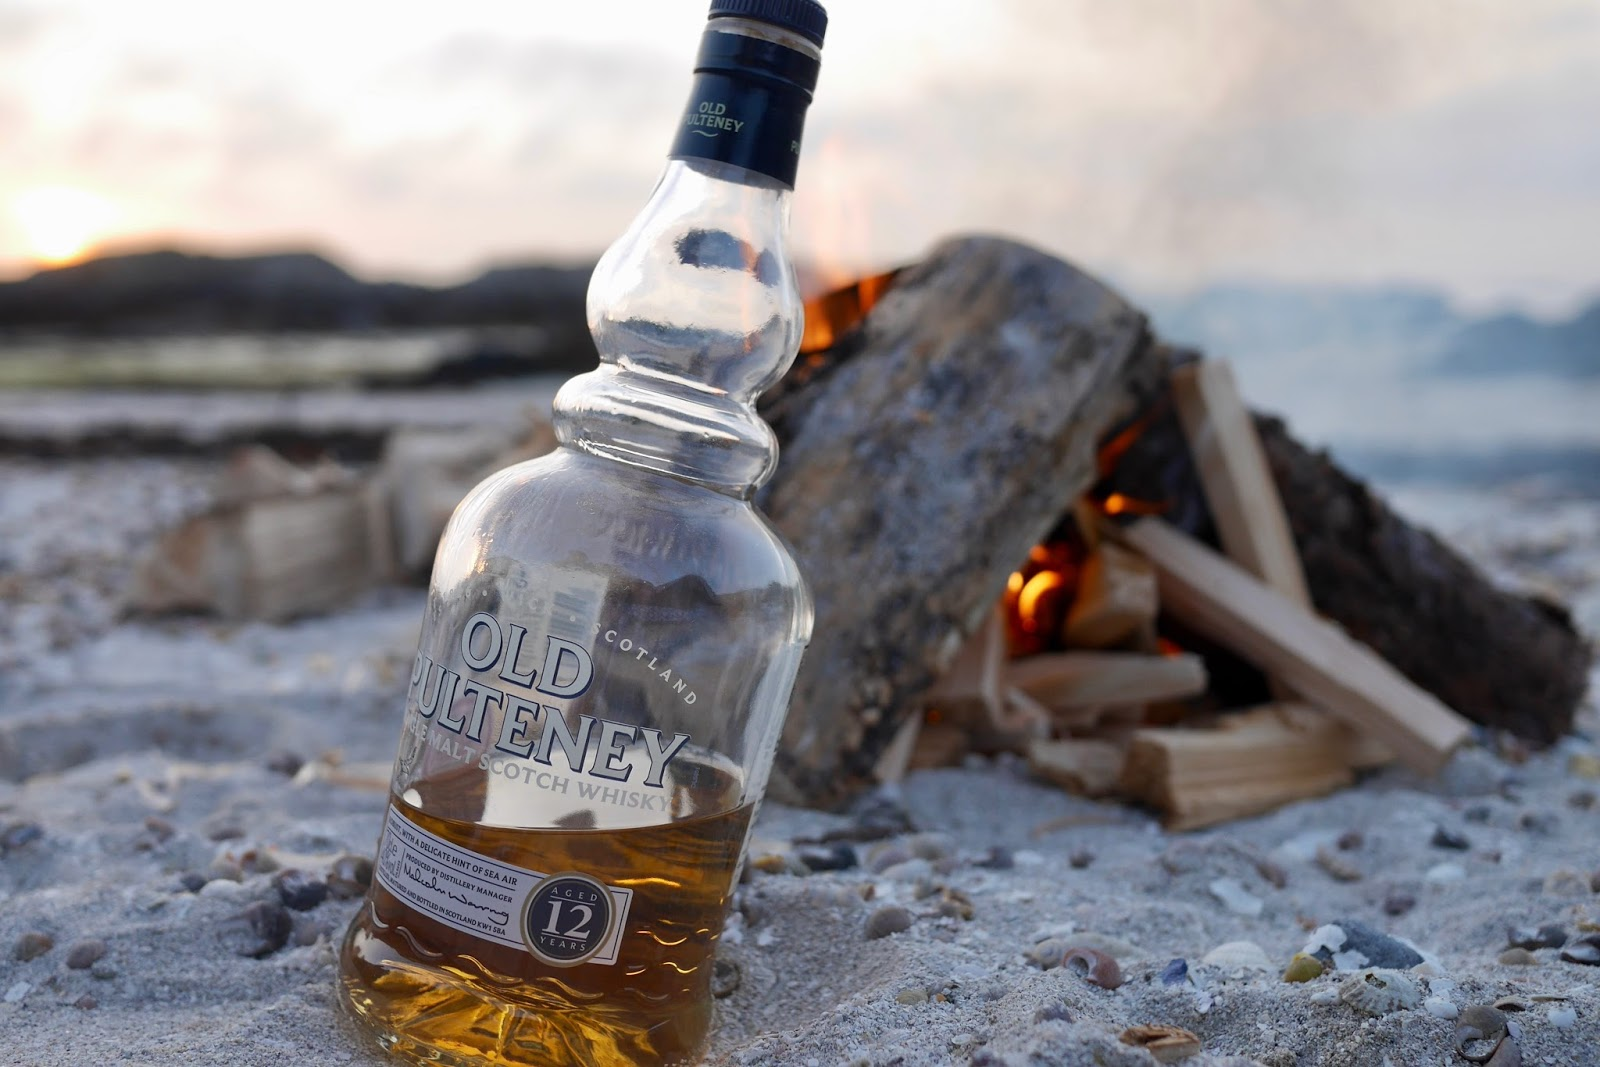 A bottle of old pulteney sitting by the camp fire just itching to be drunk